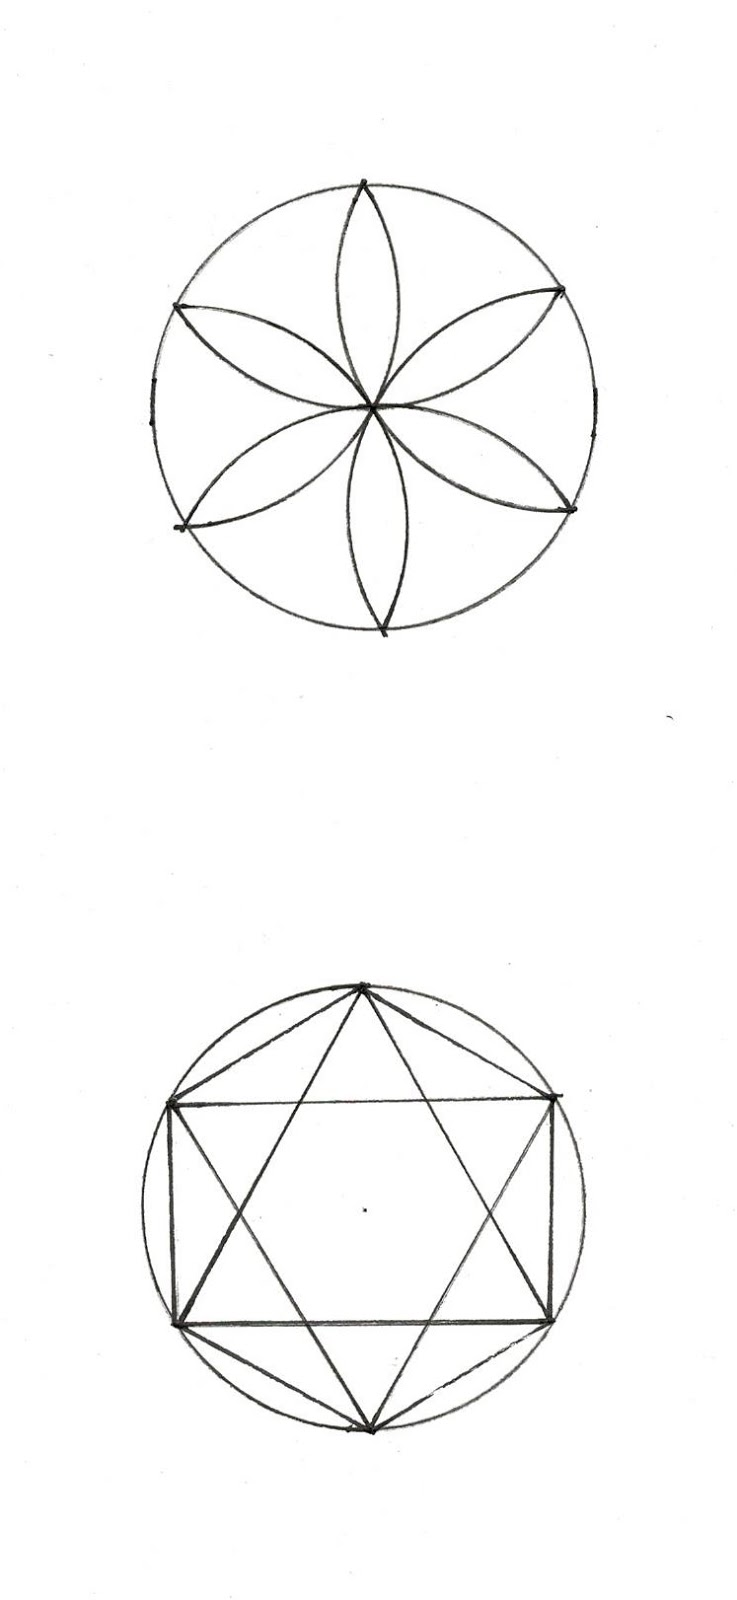 Jane Griswold Radocchia: Of Course Geometry is Magic!